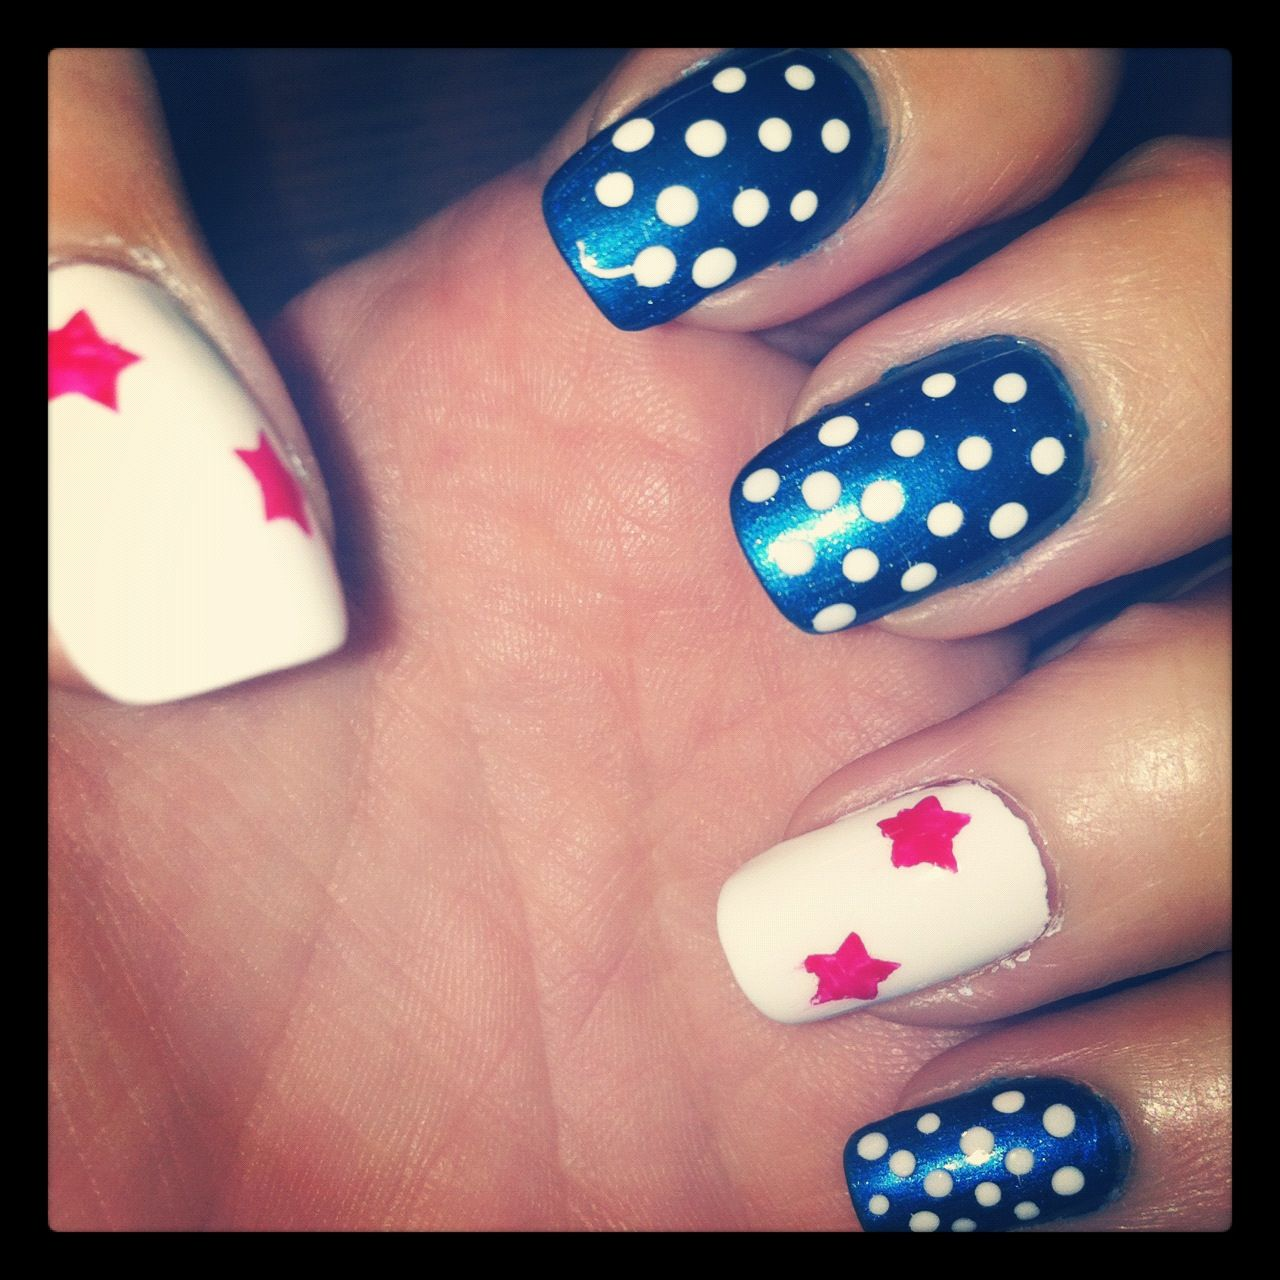 Get The Look 3 Valentine S Day Nail Art Ideas From Lauren B: Patriotic Nails, Holiday Mani, Nails